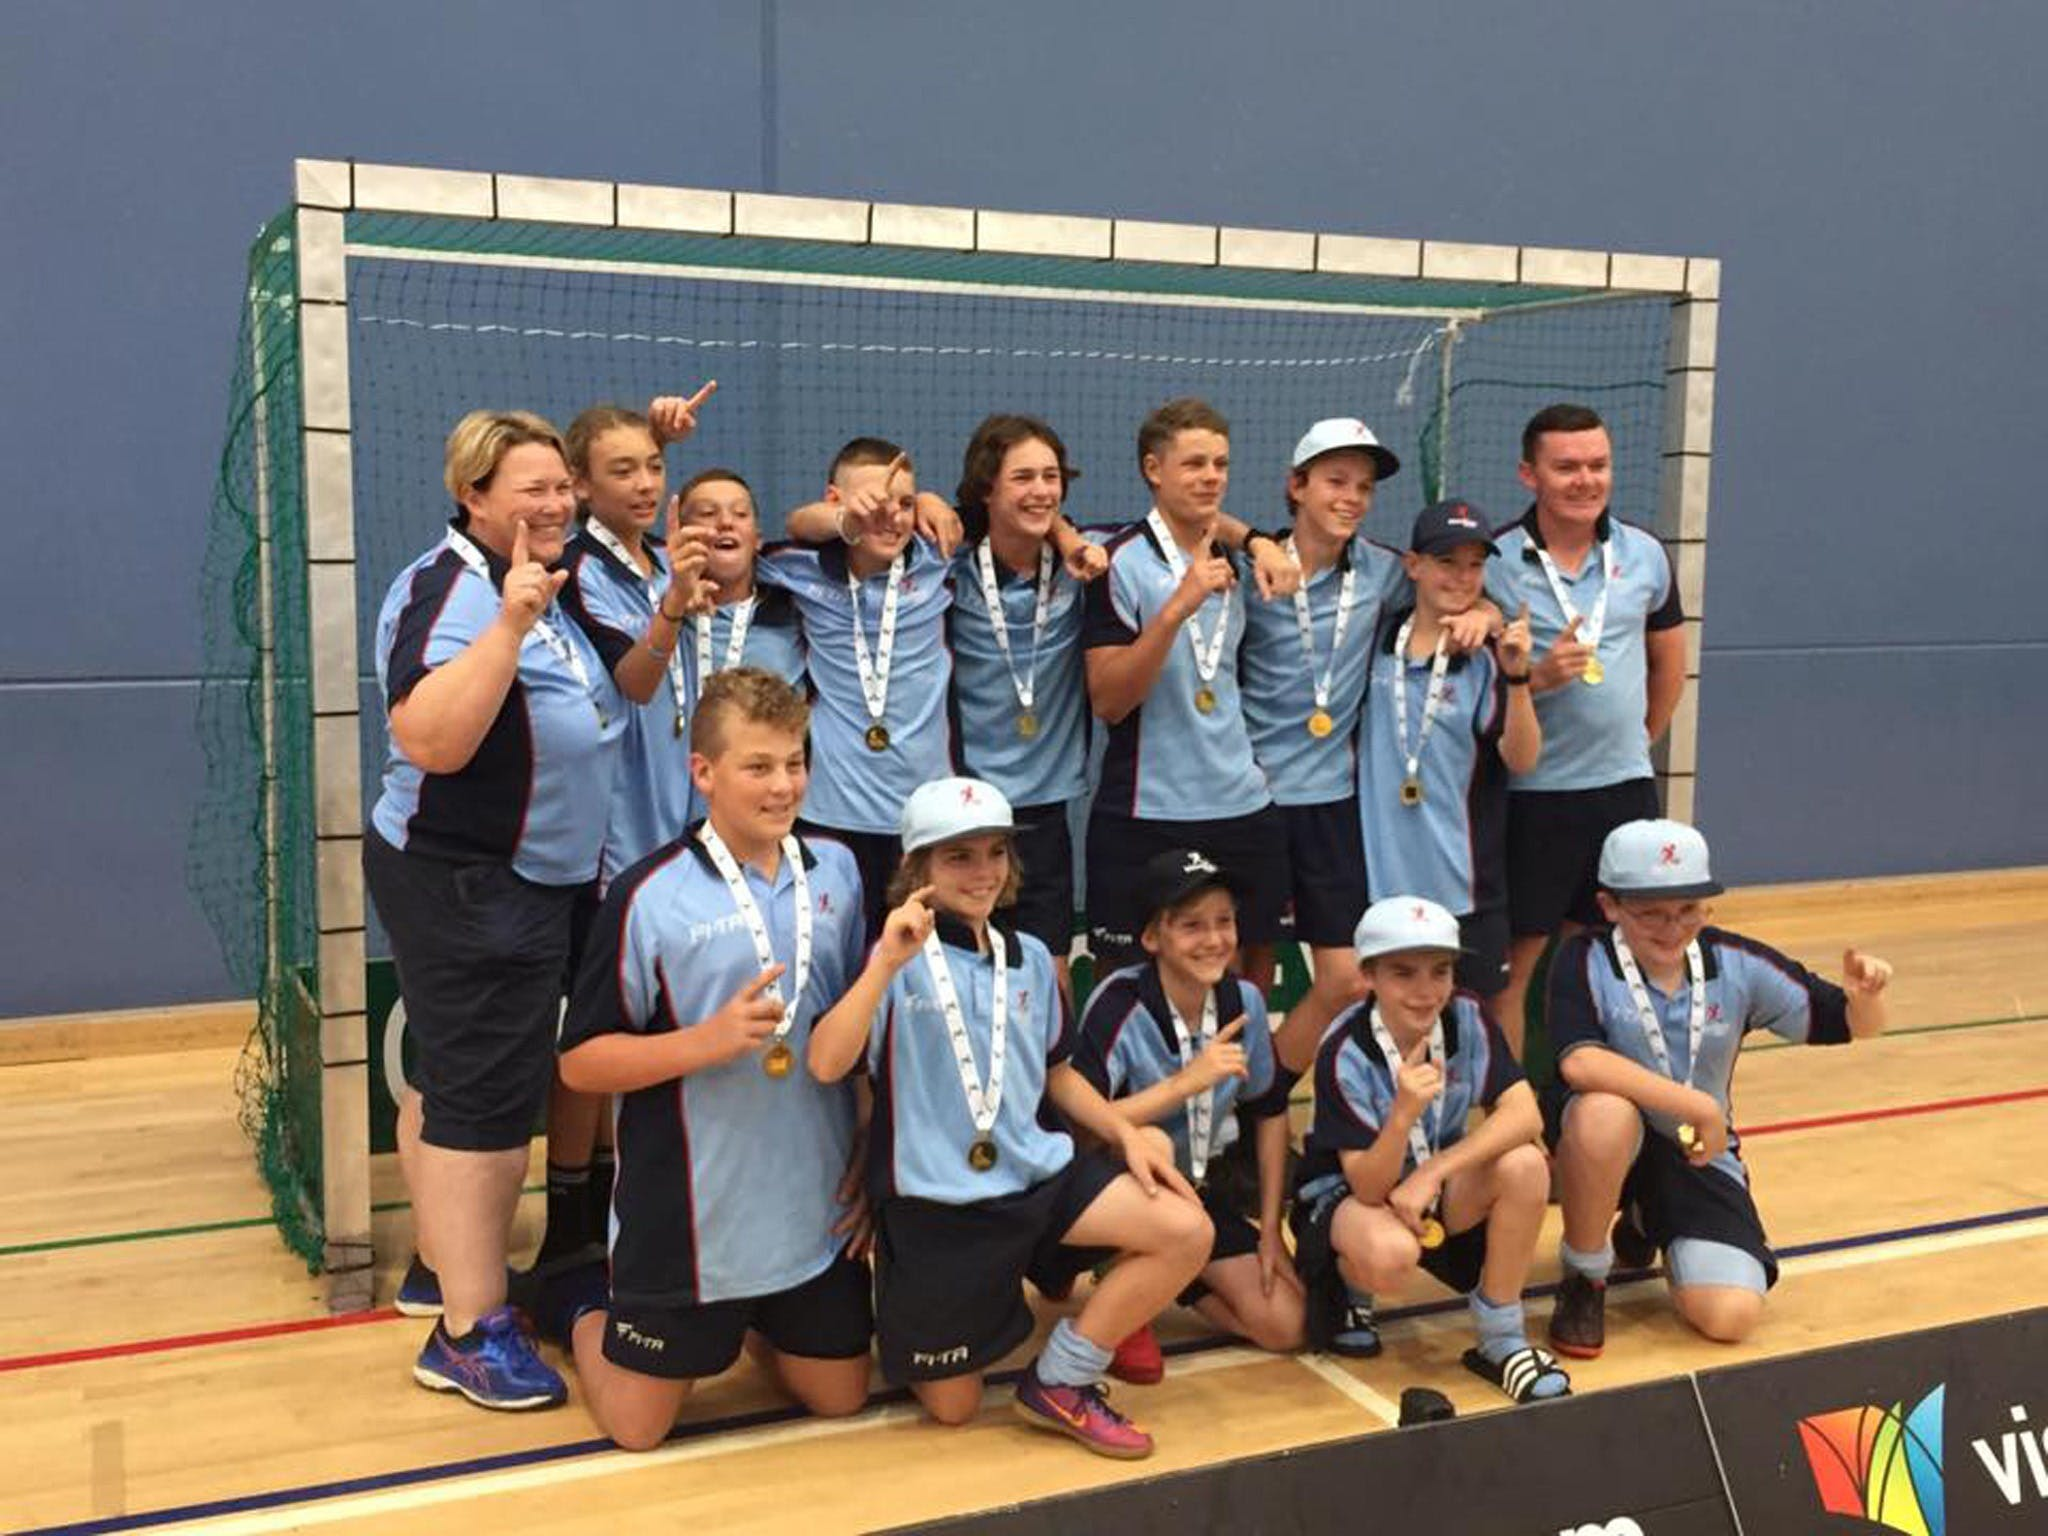 Hockey NSW Indoor State Championship  Under 18 Boys - WA Accommodation